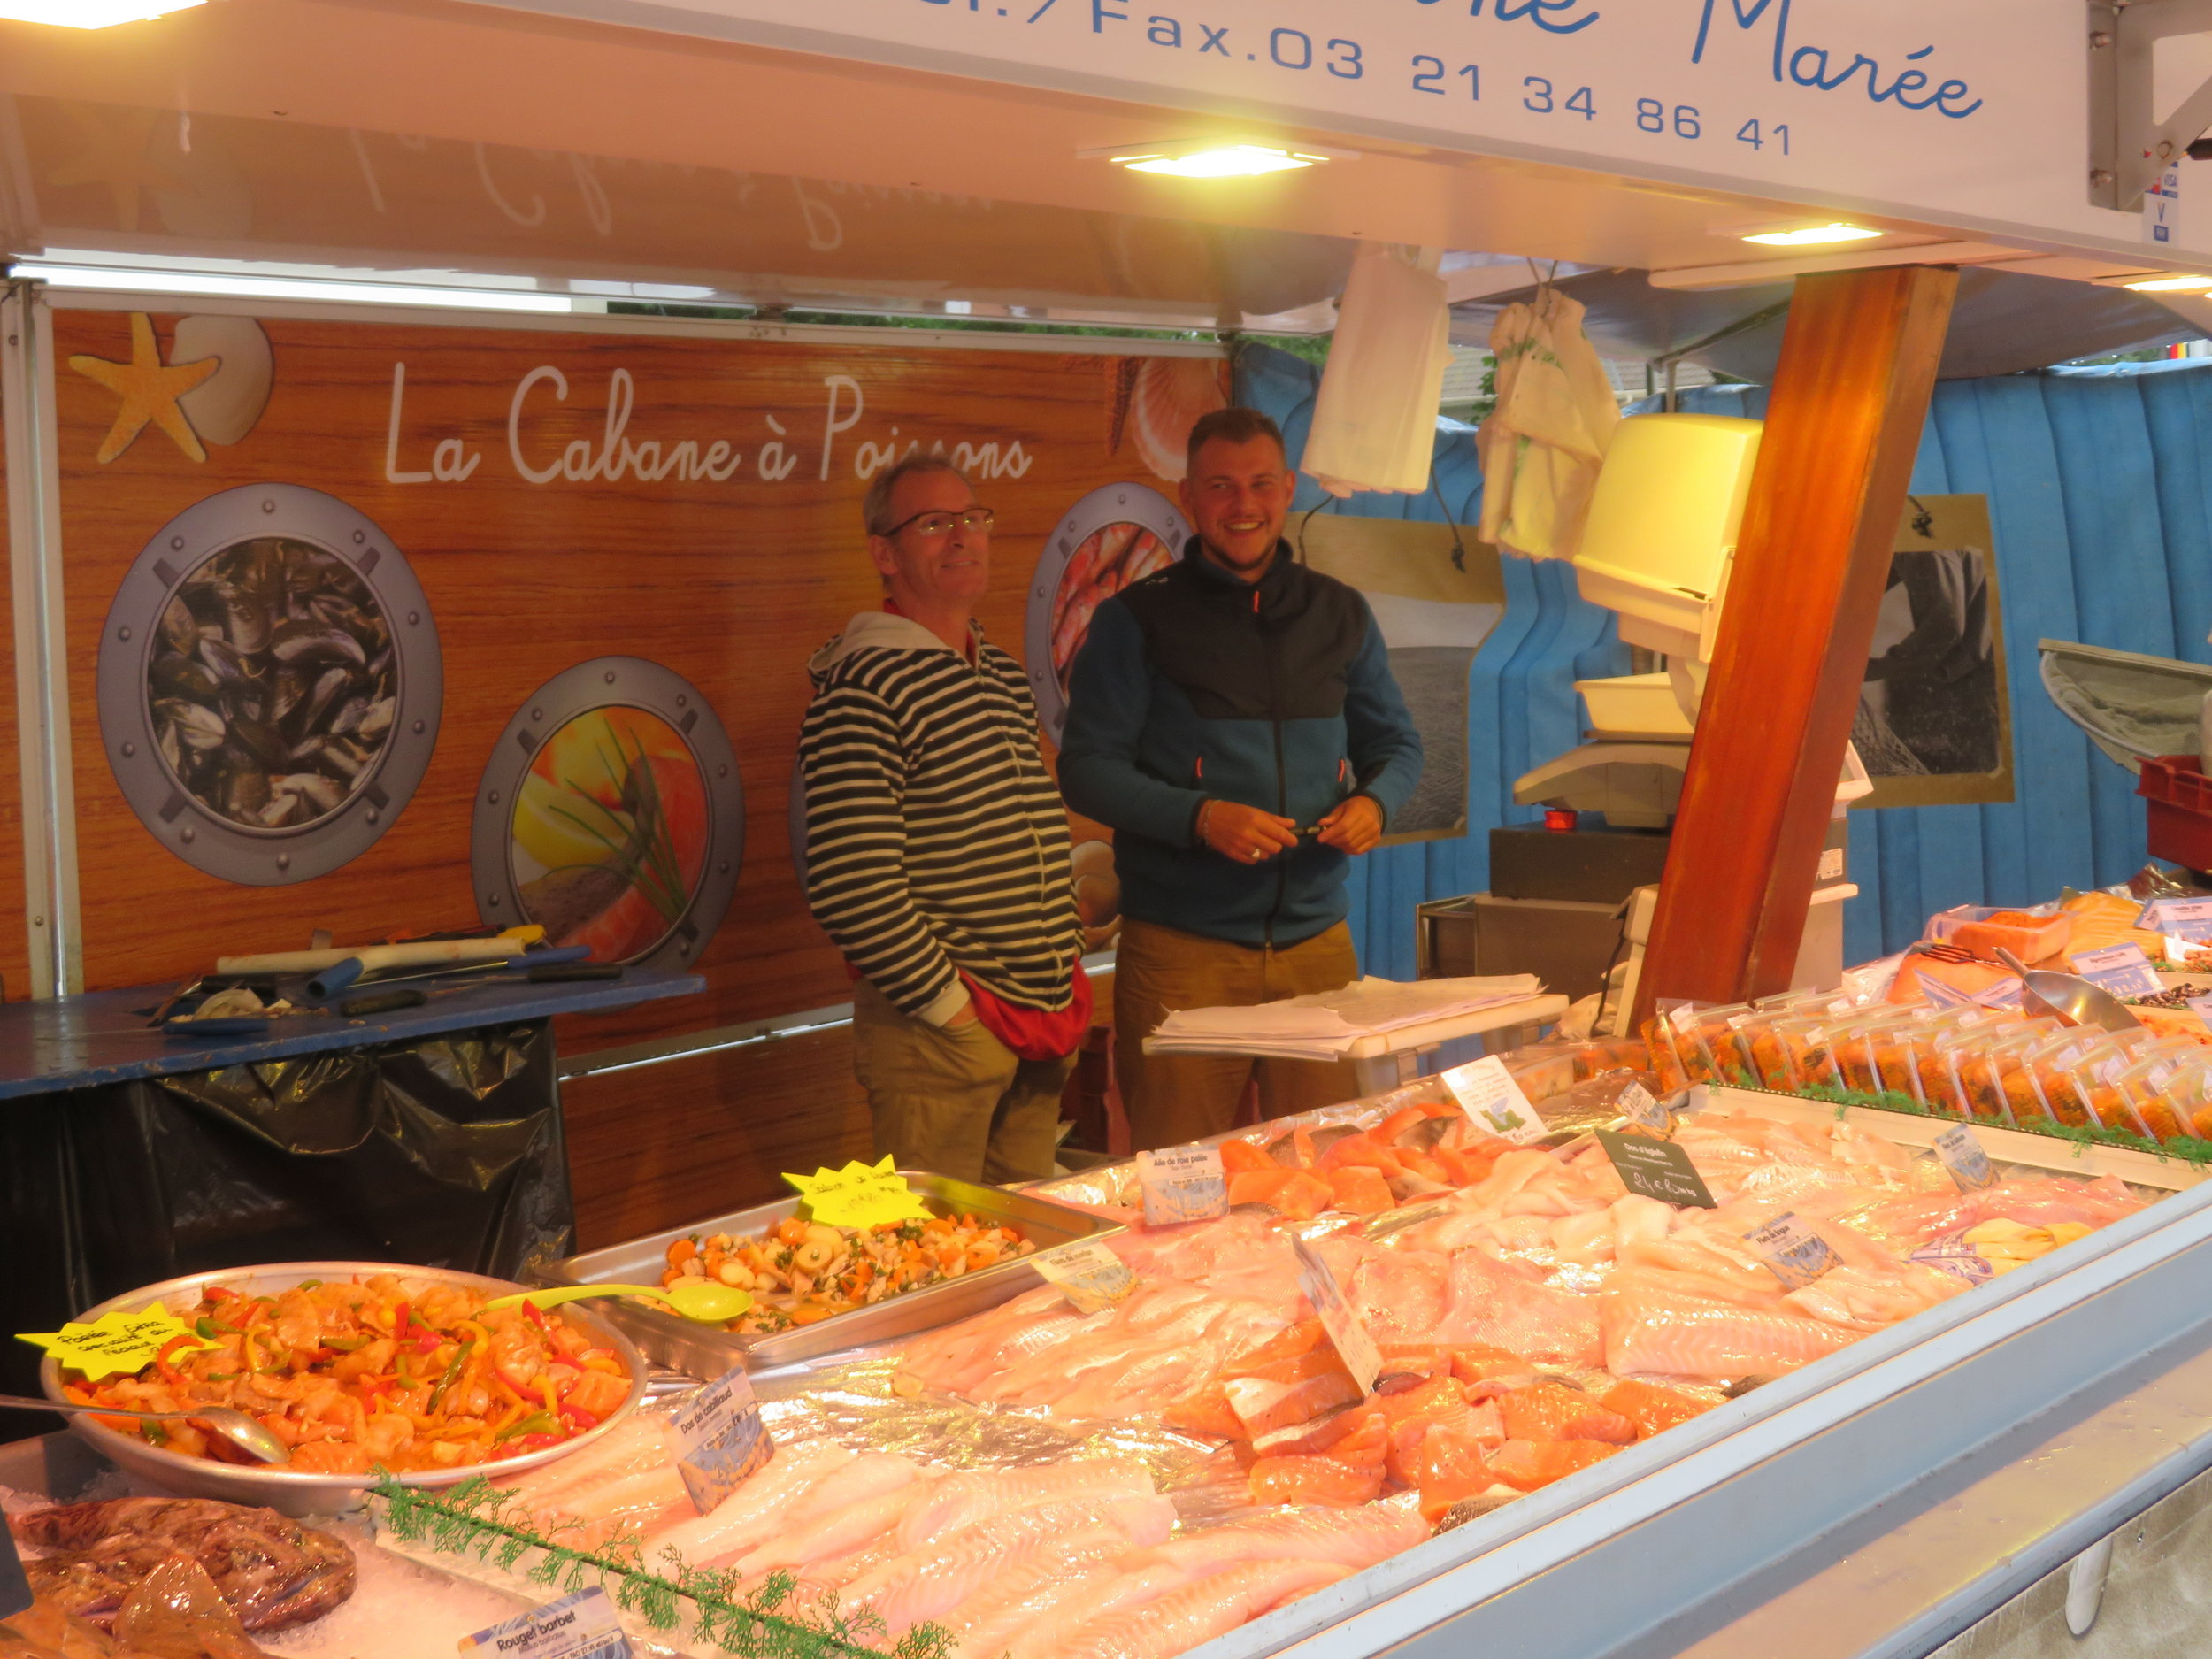 The fishmongers were only too happy to let me take a a pic of them and their offerings.